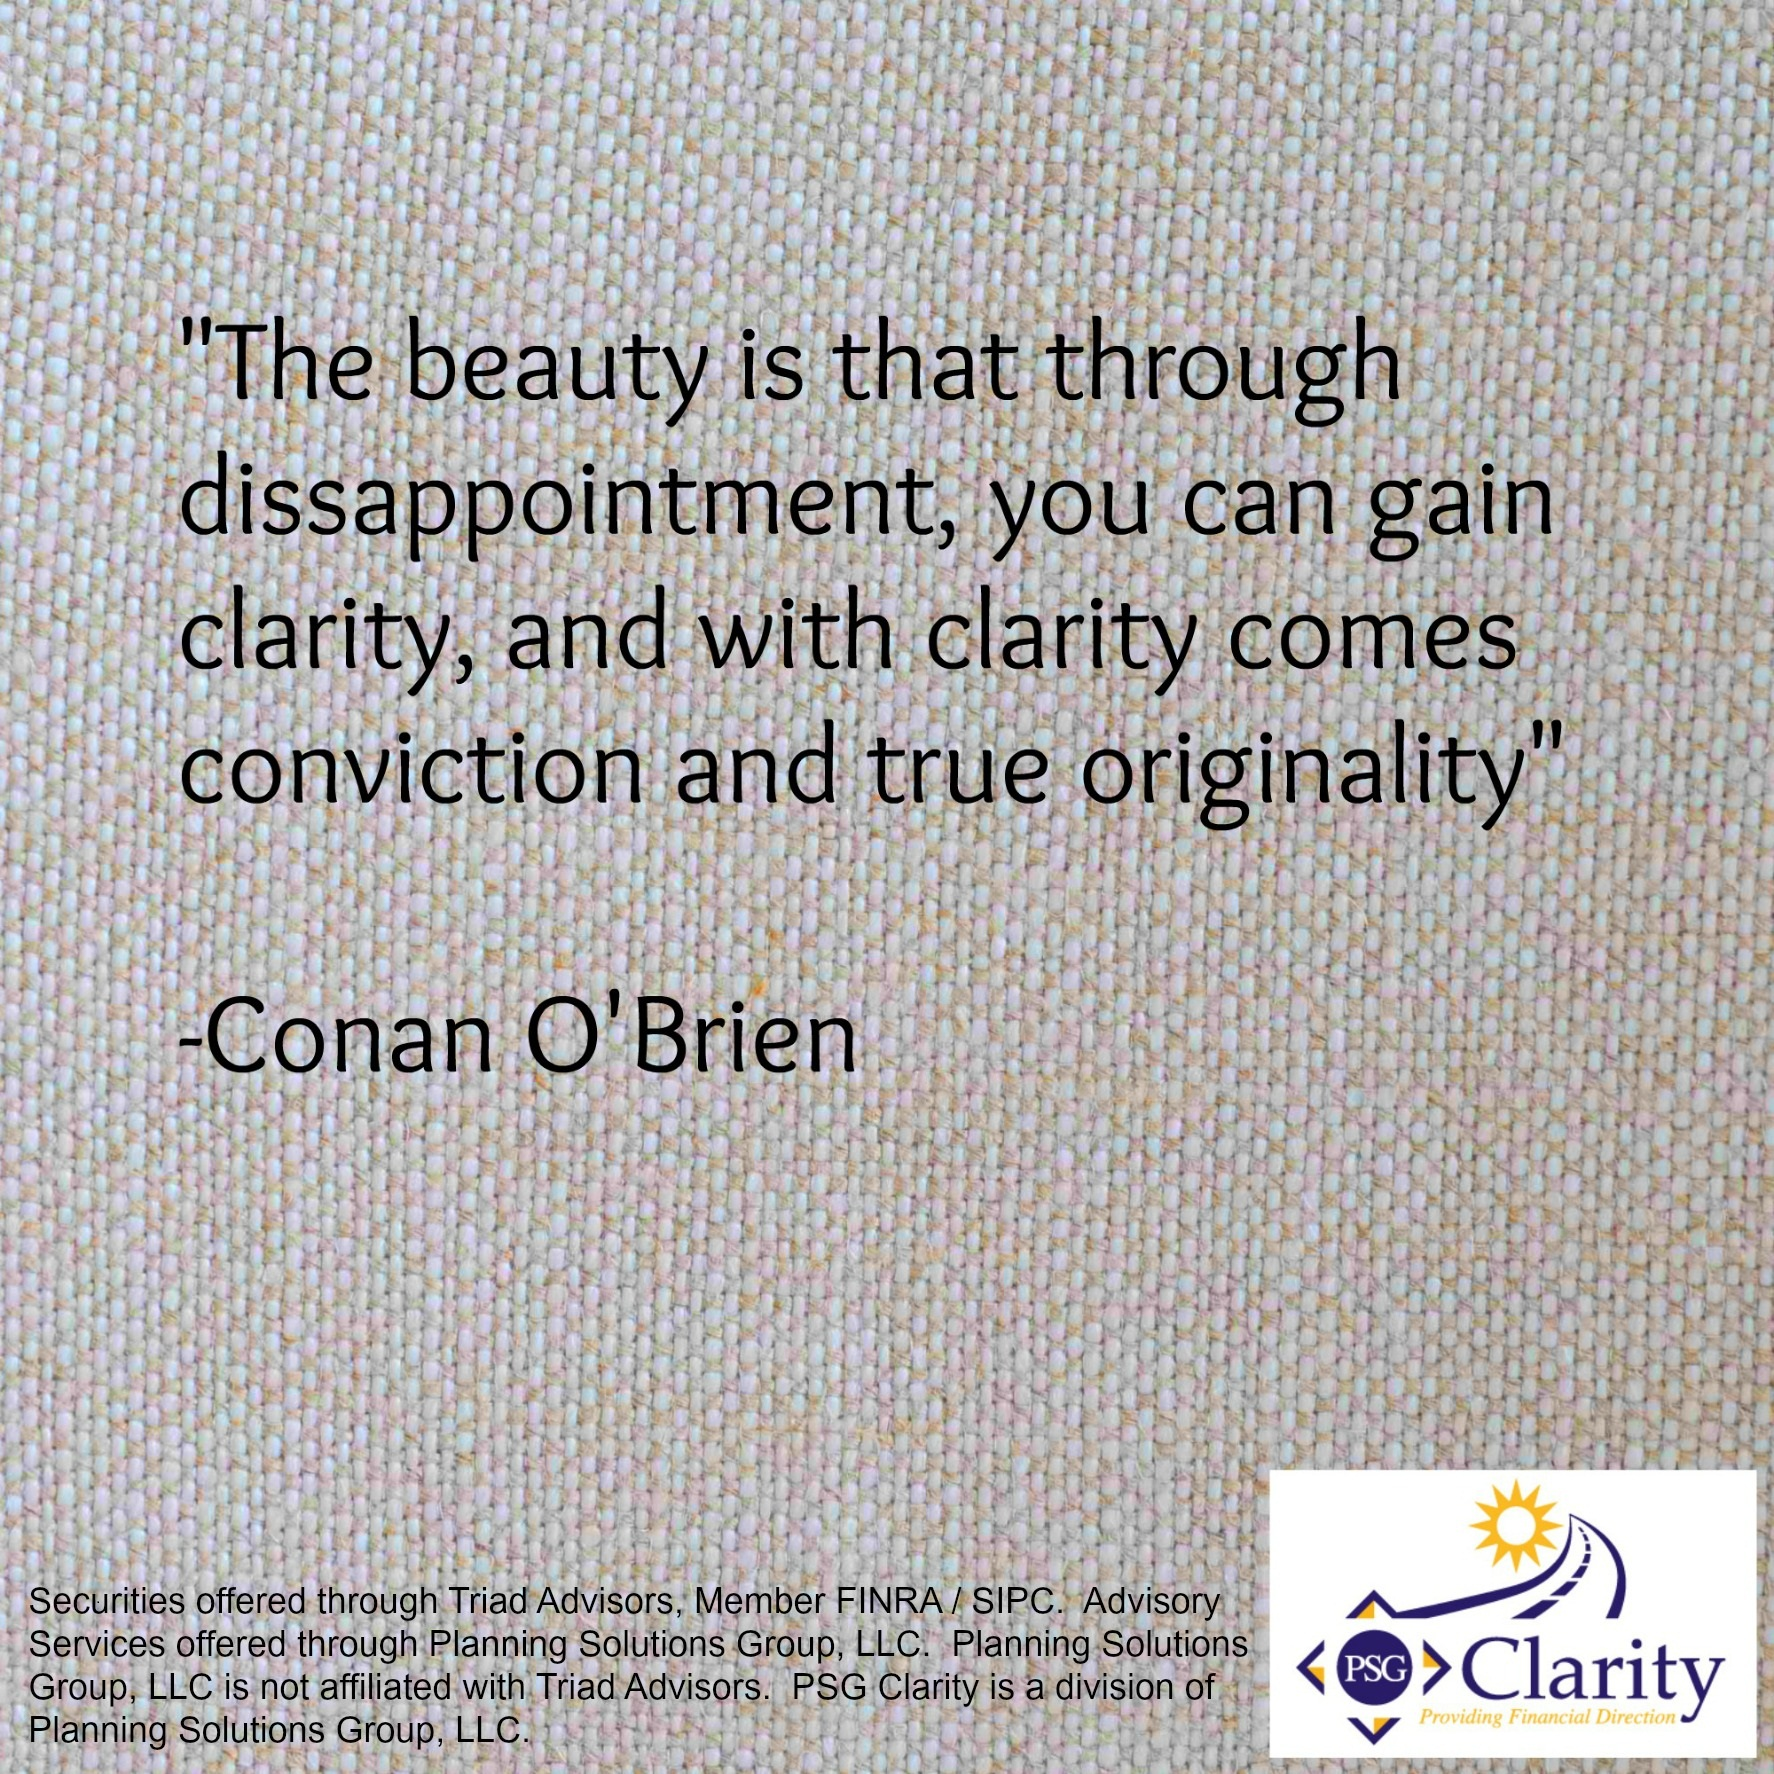 66 Top Clarity Quotes And Sayings